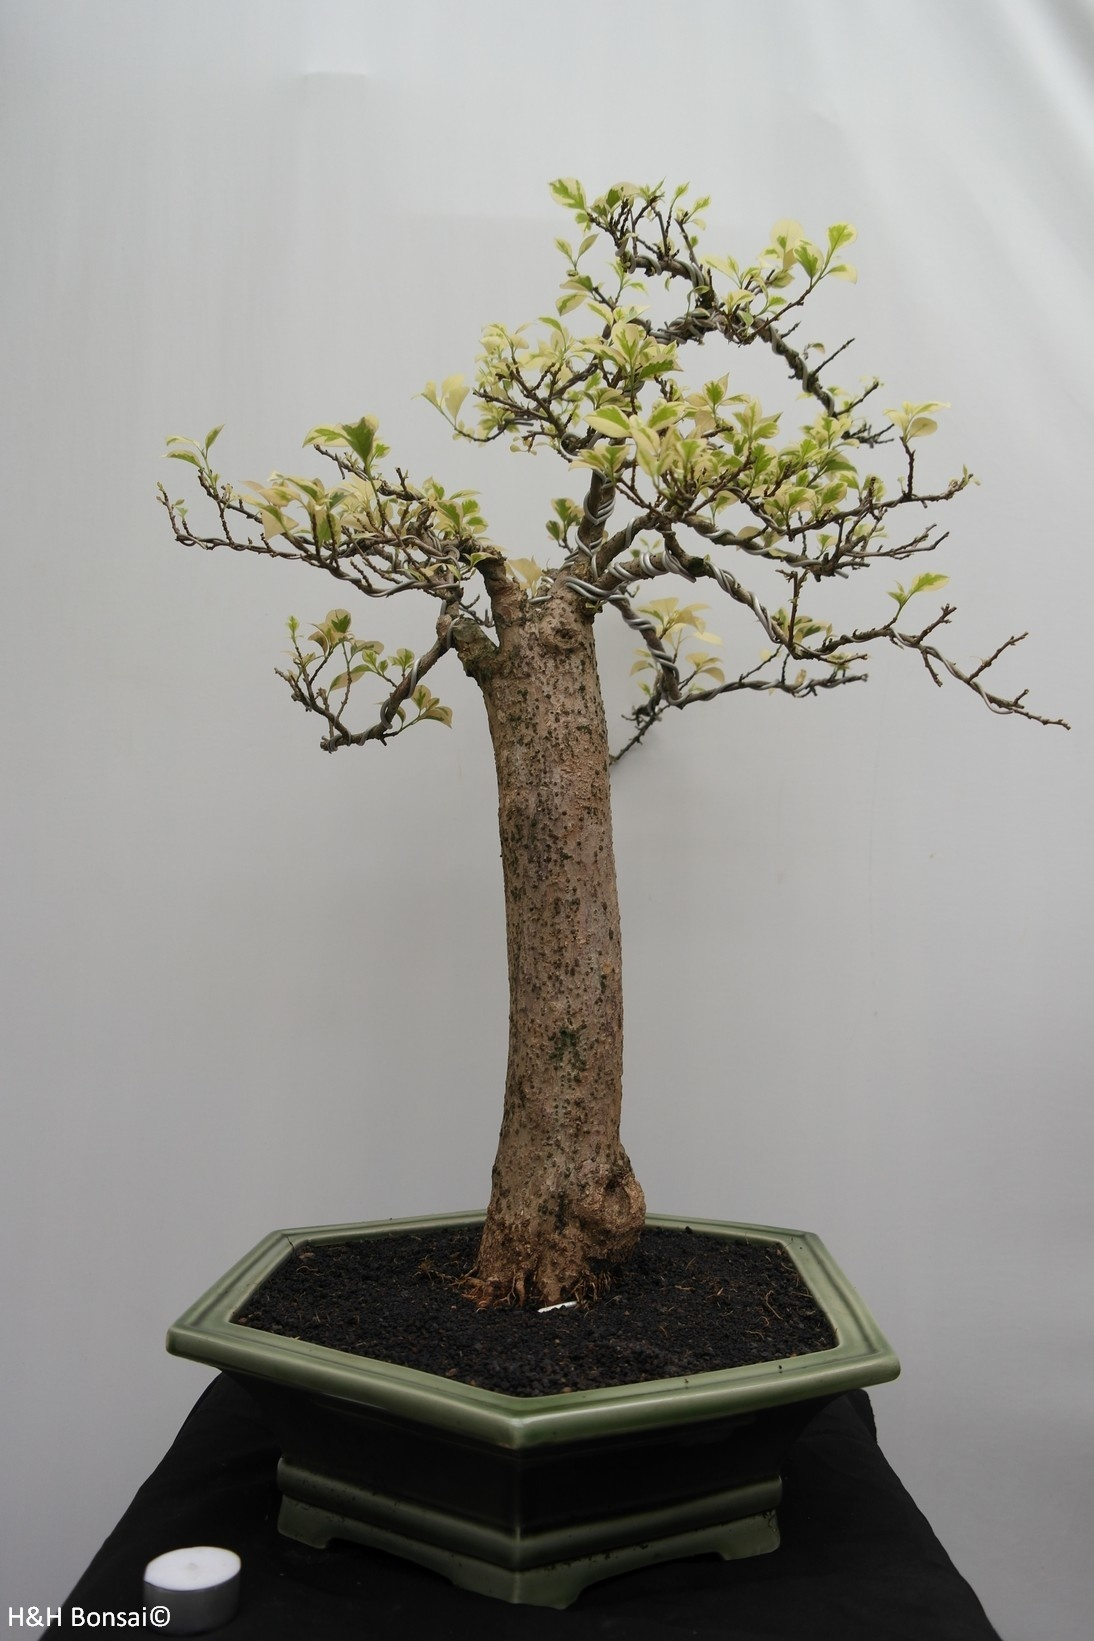 Bonsai Bougainvillea glabra, variegata, no. 7824